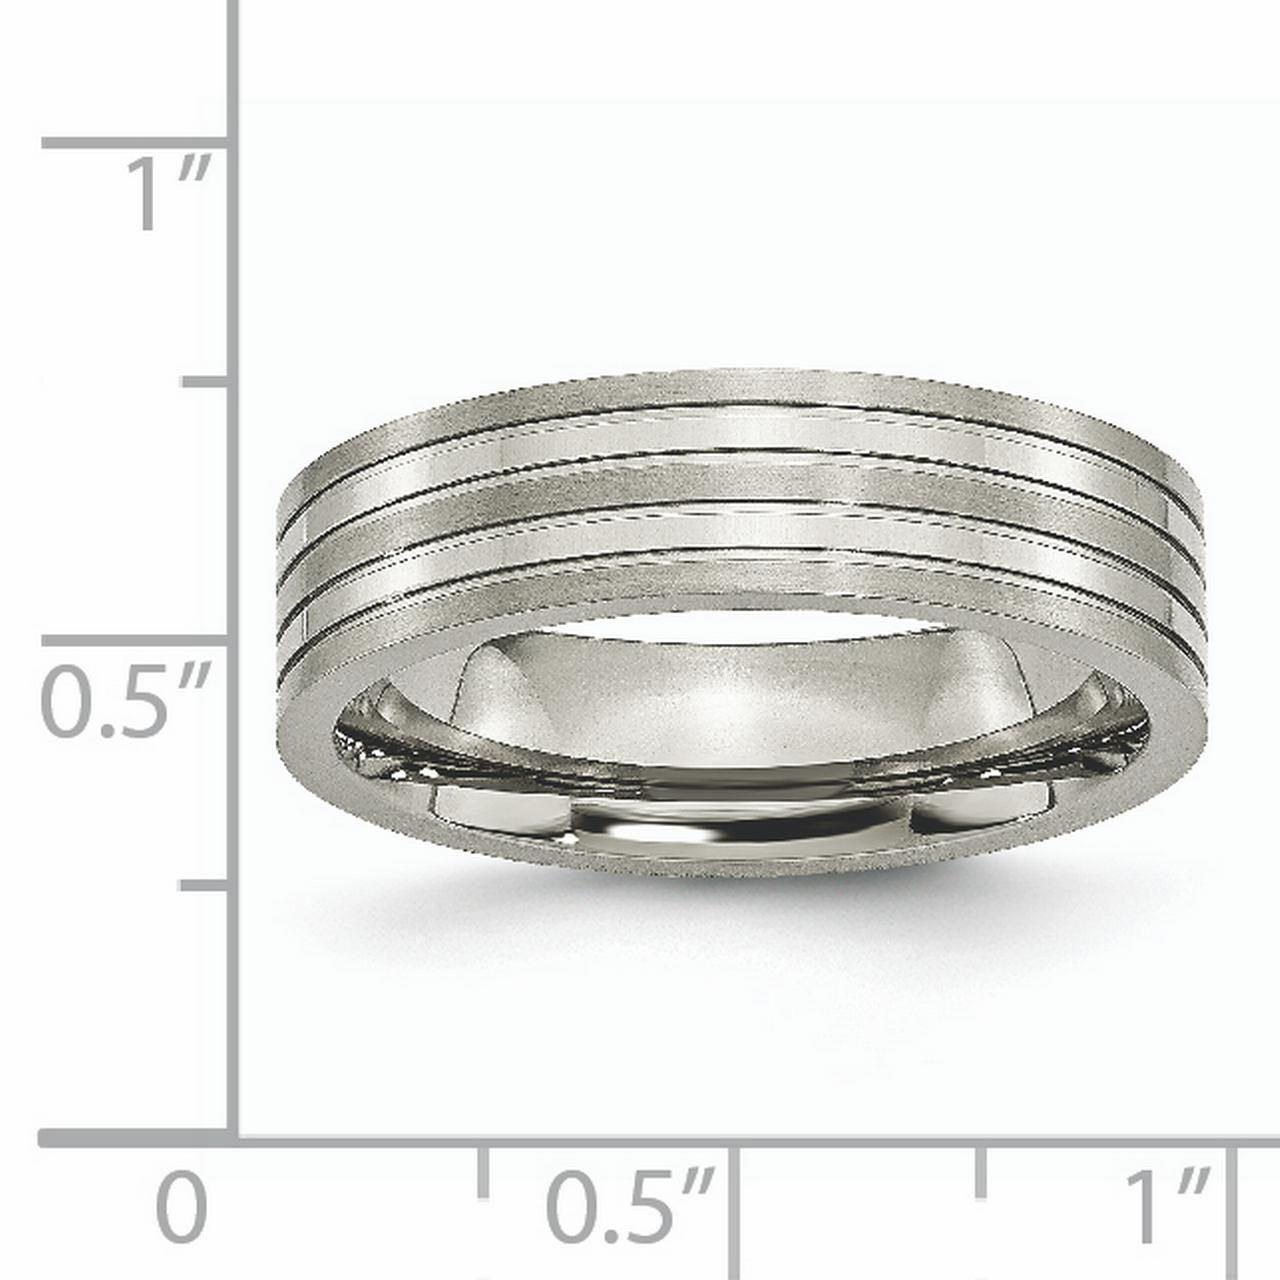 Titanium Grooved 6mm Brushed Wedding Ring Band Size 12.00 Fashion Jewelry Gifts For Women For Her - image 2 of 6